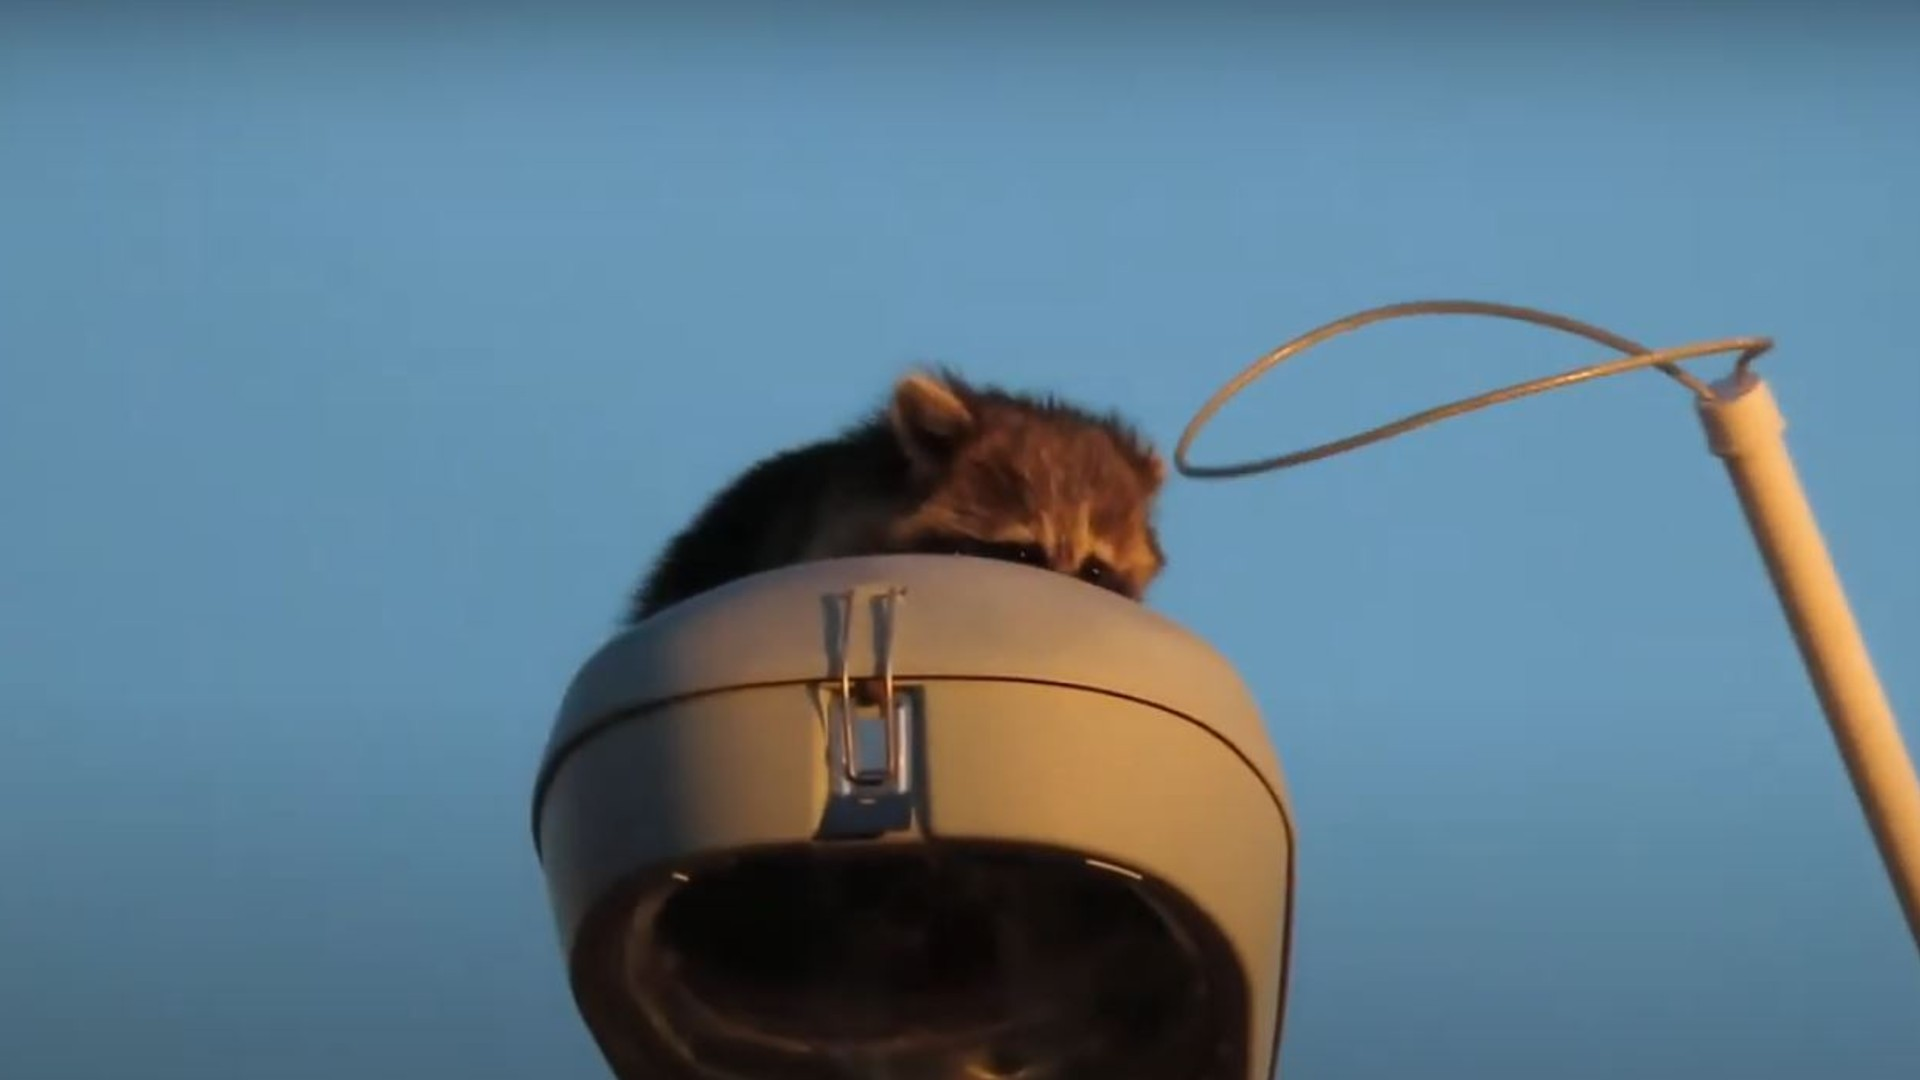 Raccoon Rescue From Highway Lamppost